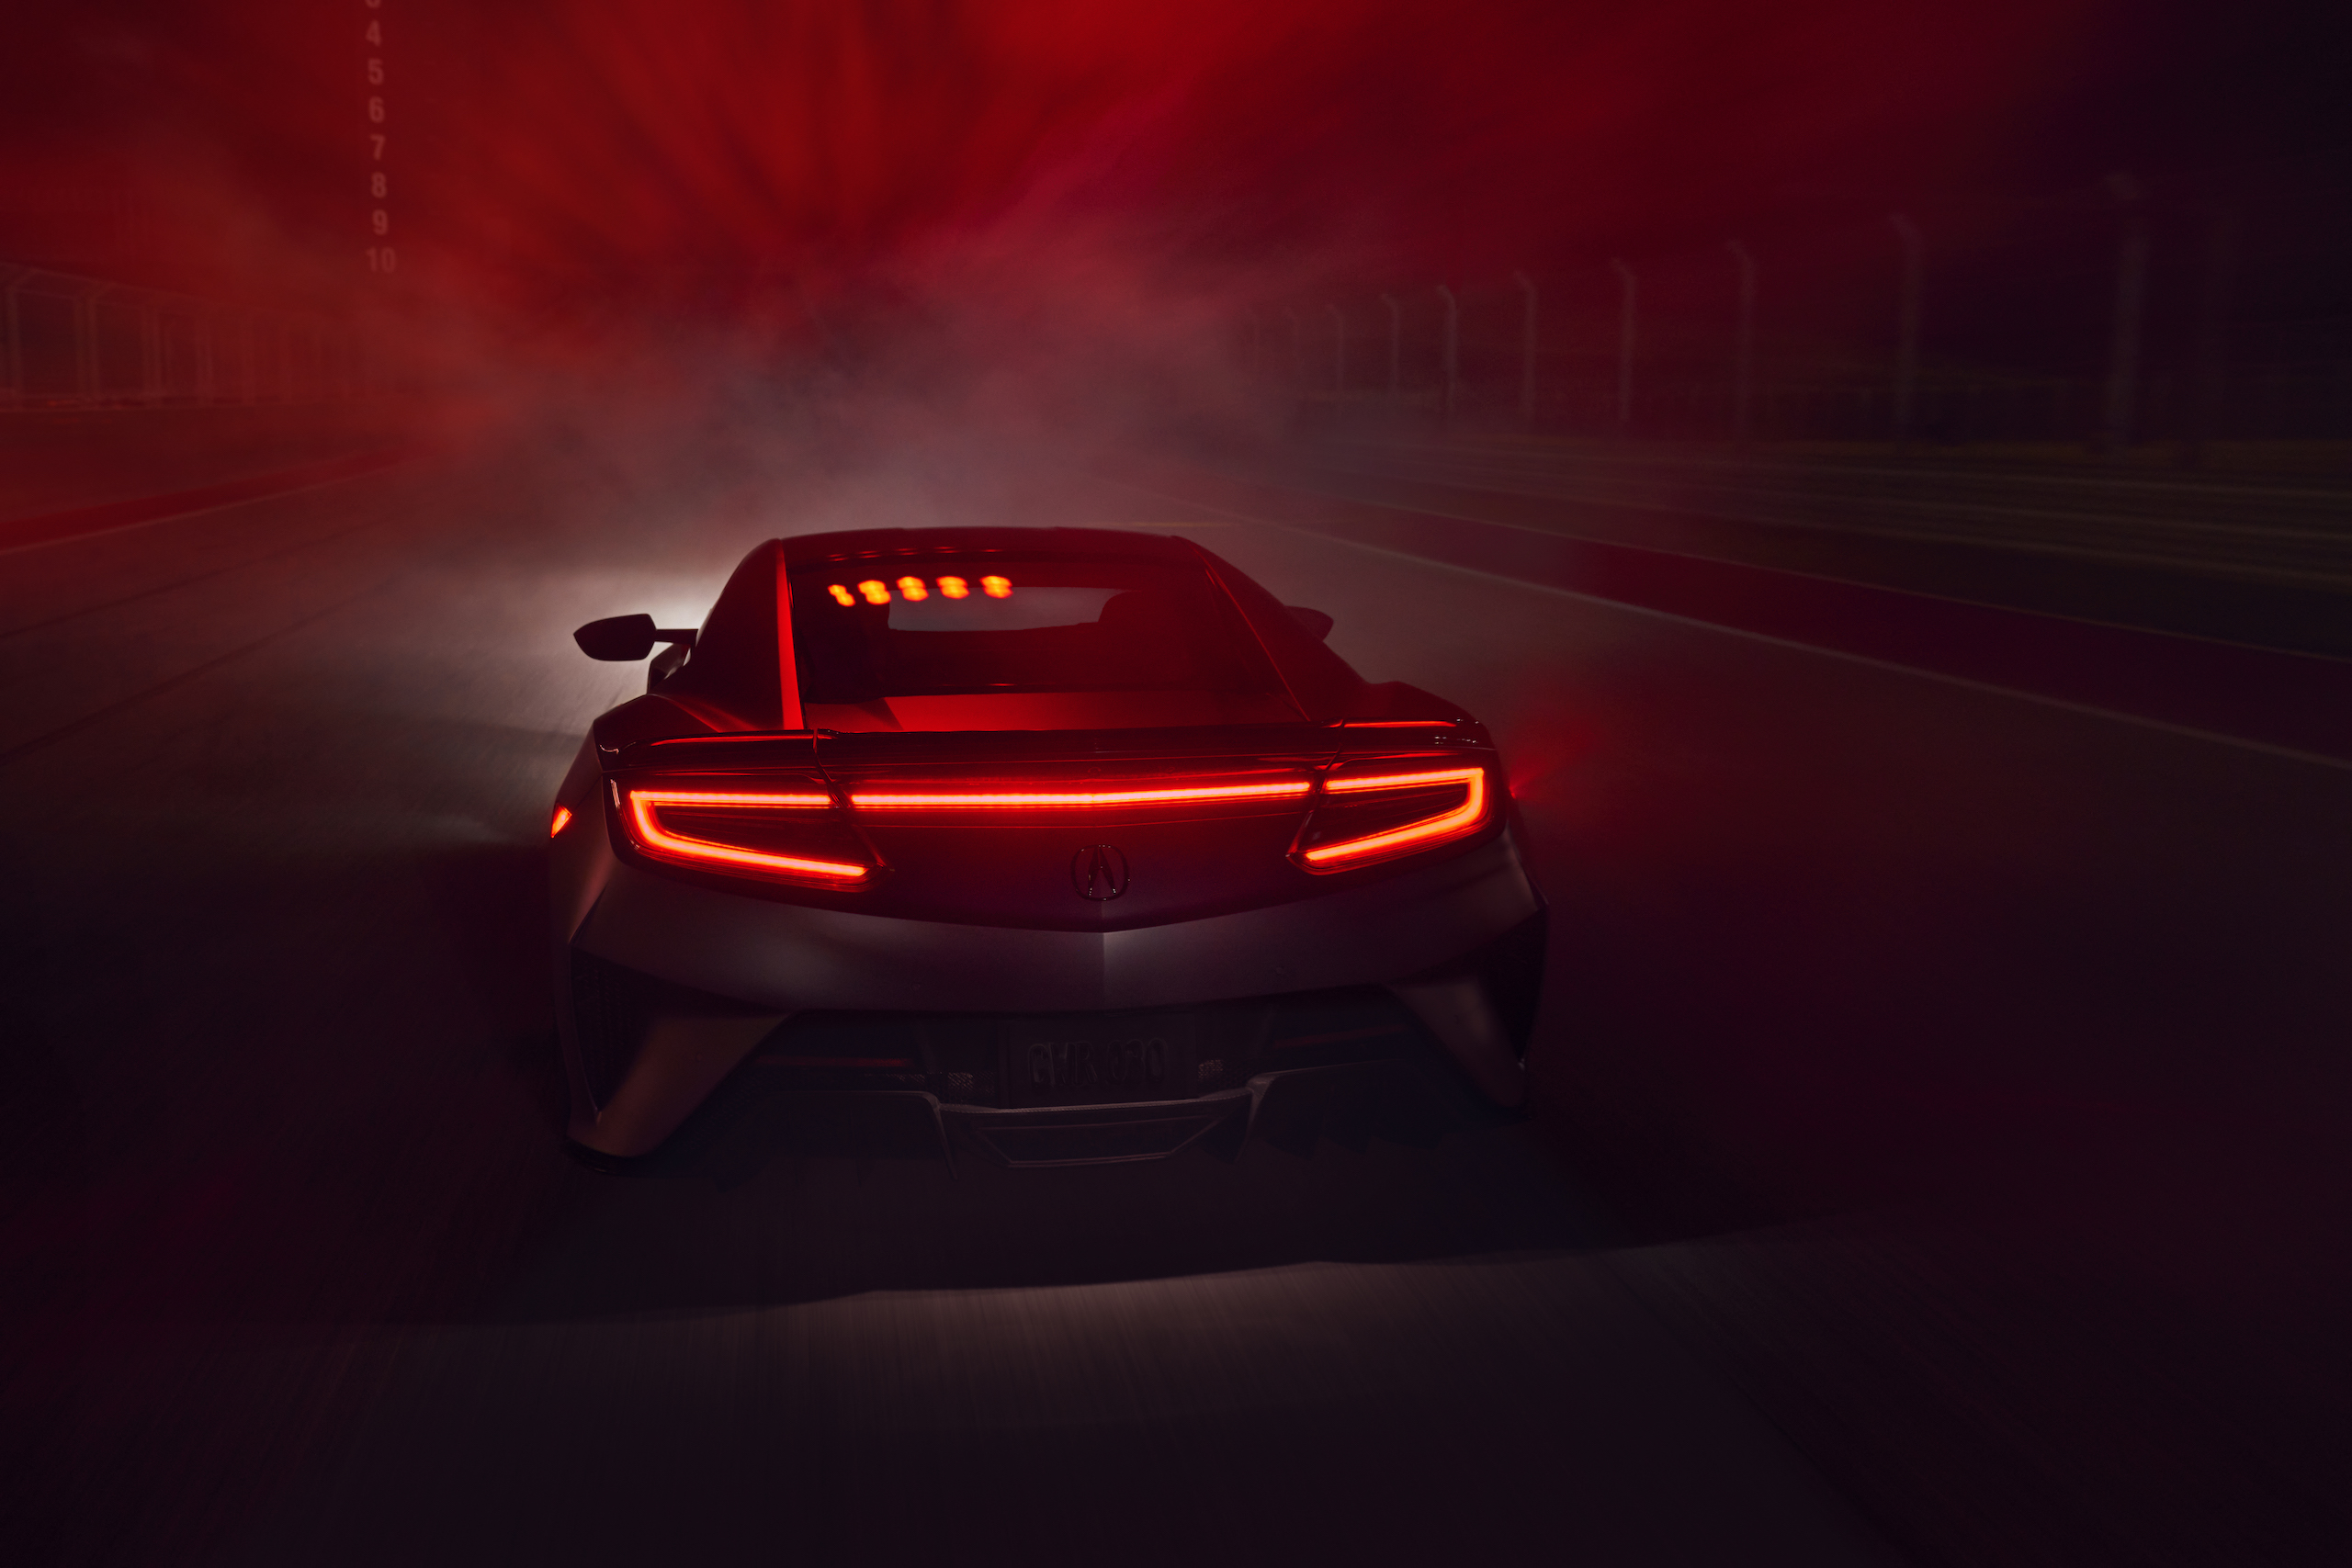 2022 Acura NSX Type S rear red smoke